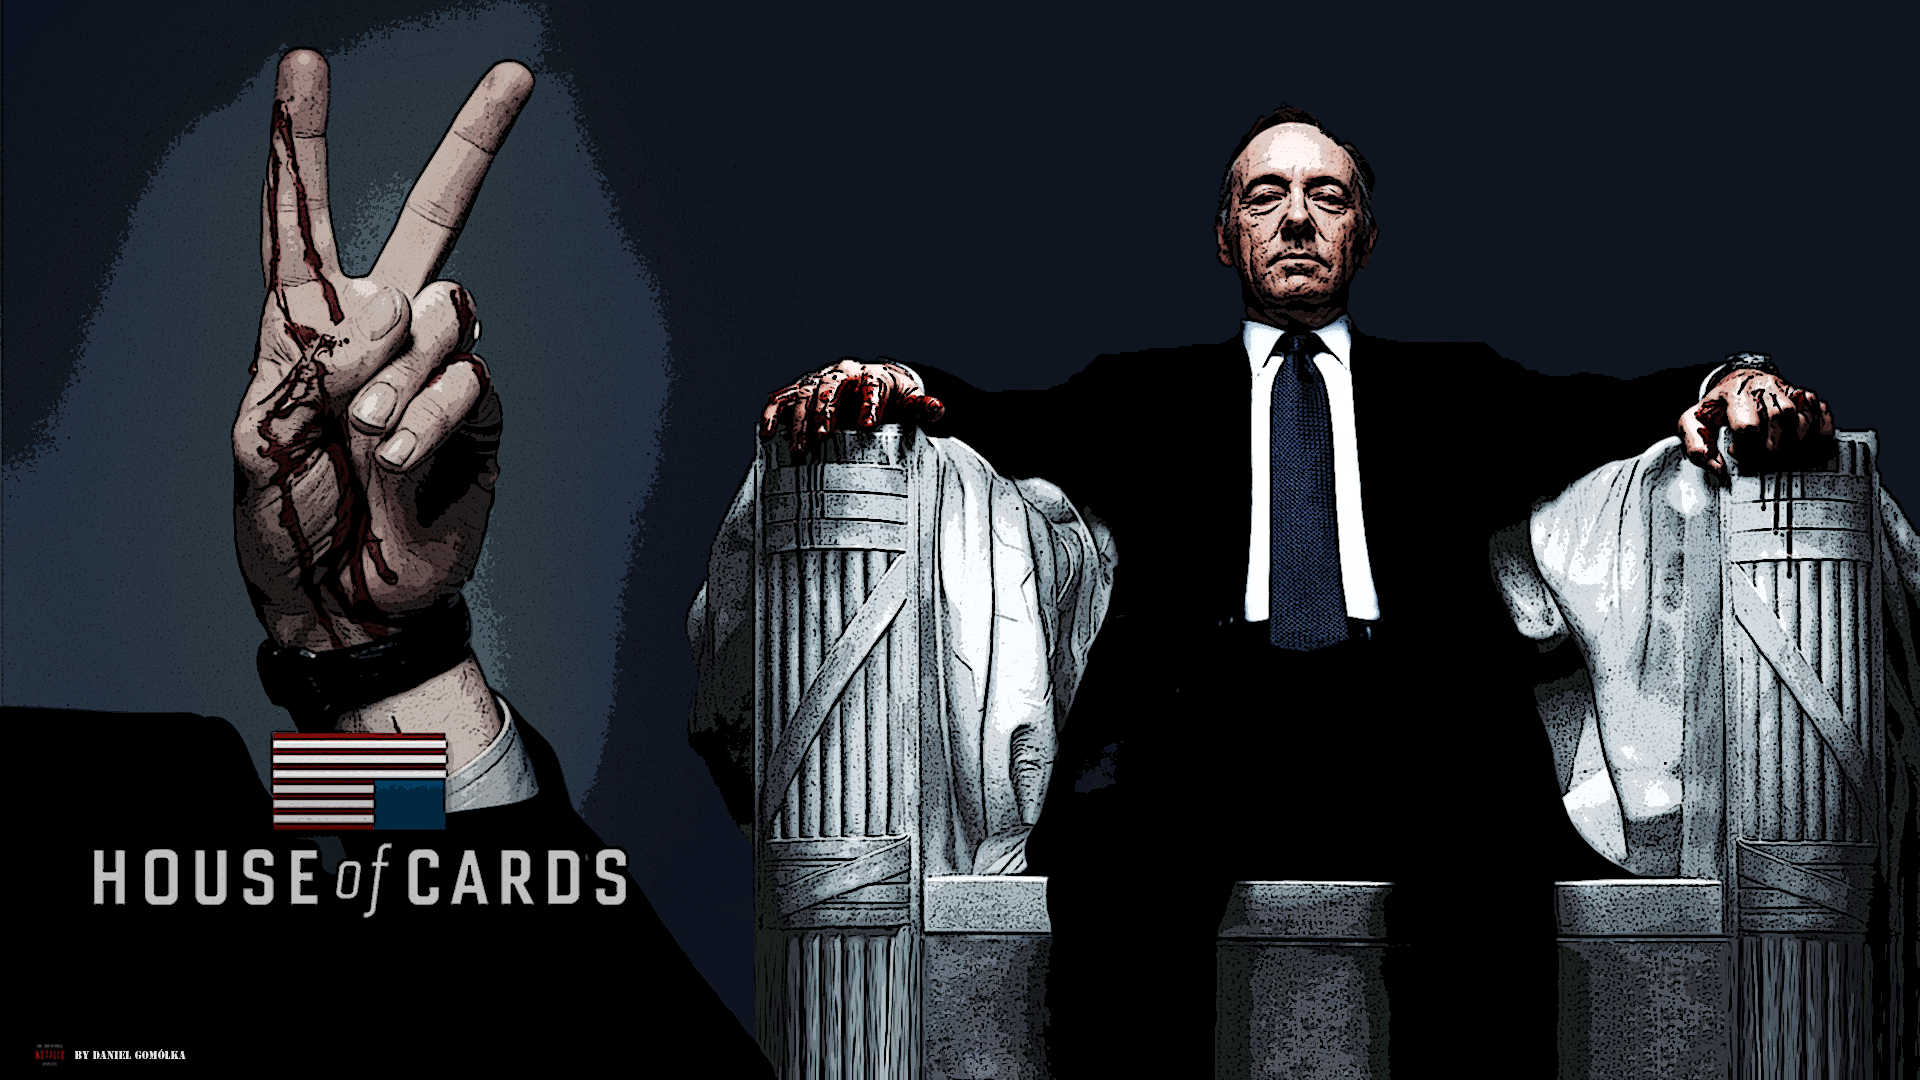 2560x1440 Wallpaper Hd House Of Cards Hd Wallpaper Background Image 1920x1080